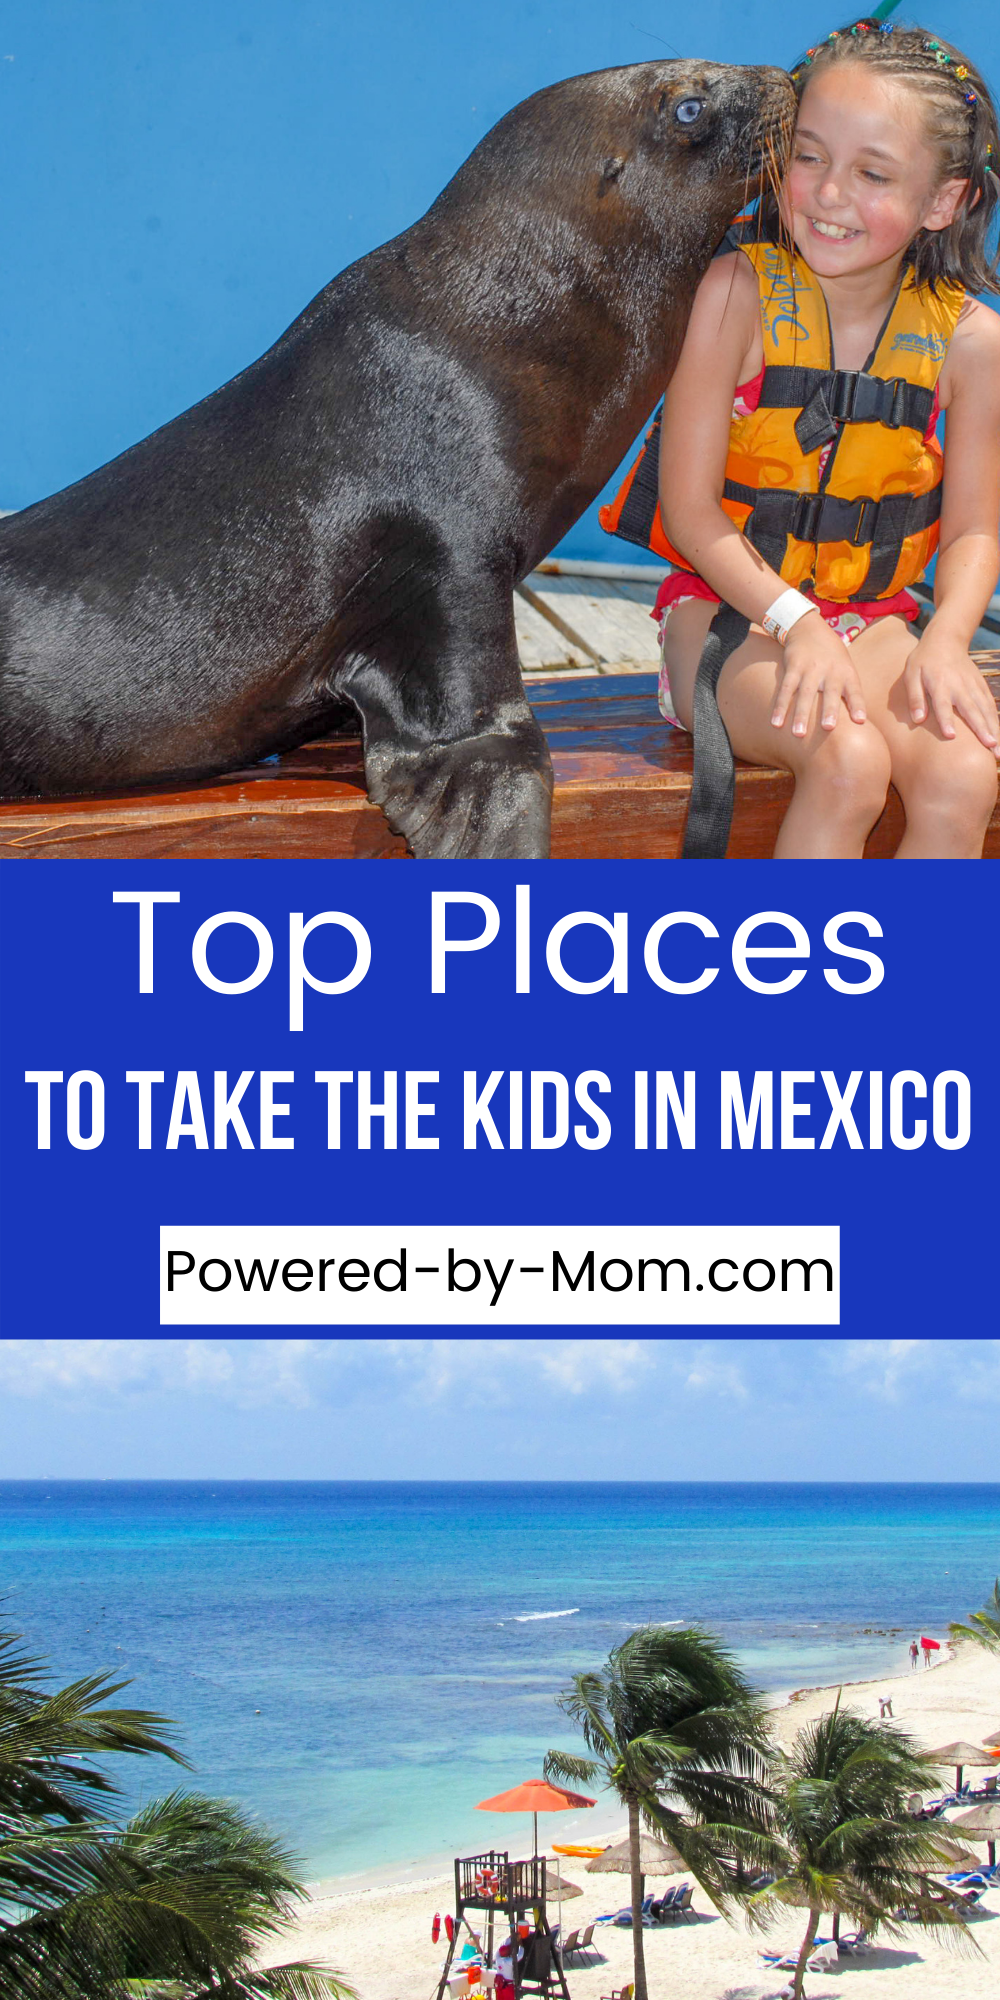 There are so many places to take kids in Mexico you might have hard time deciding where to start. We're sharing some of the top places!